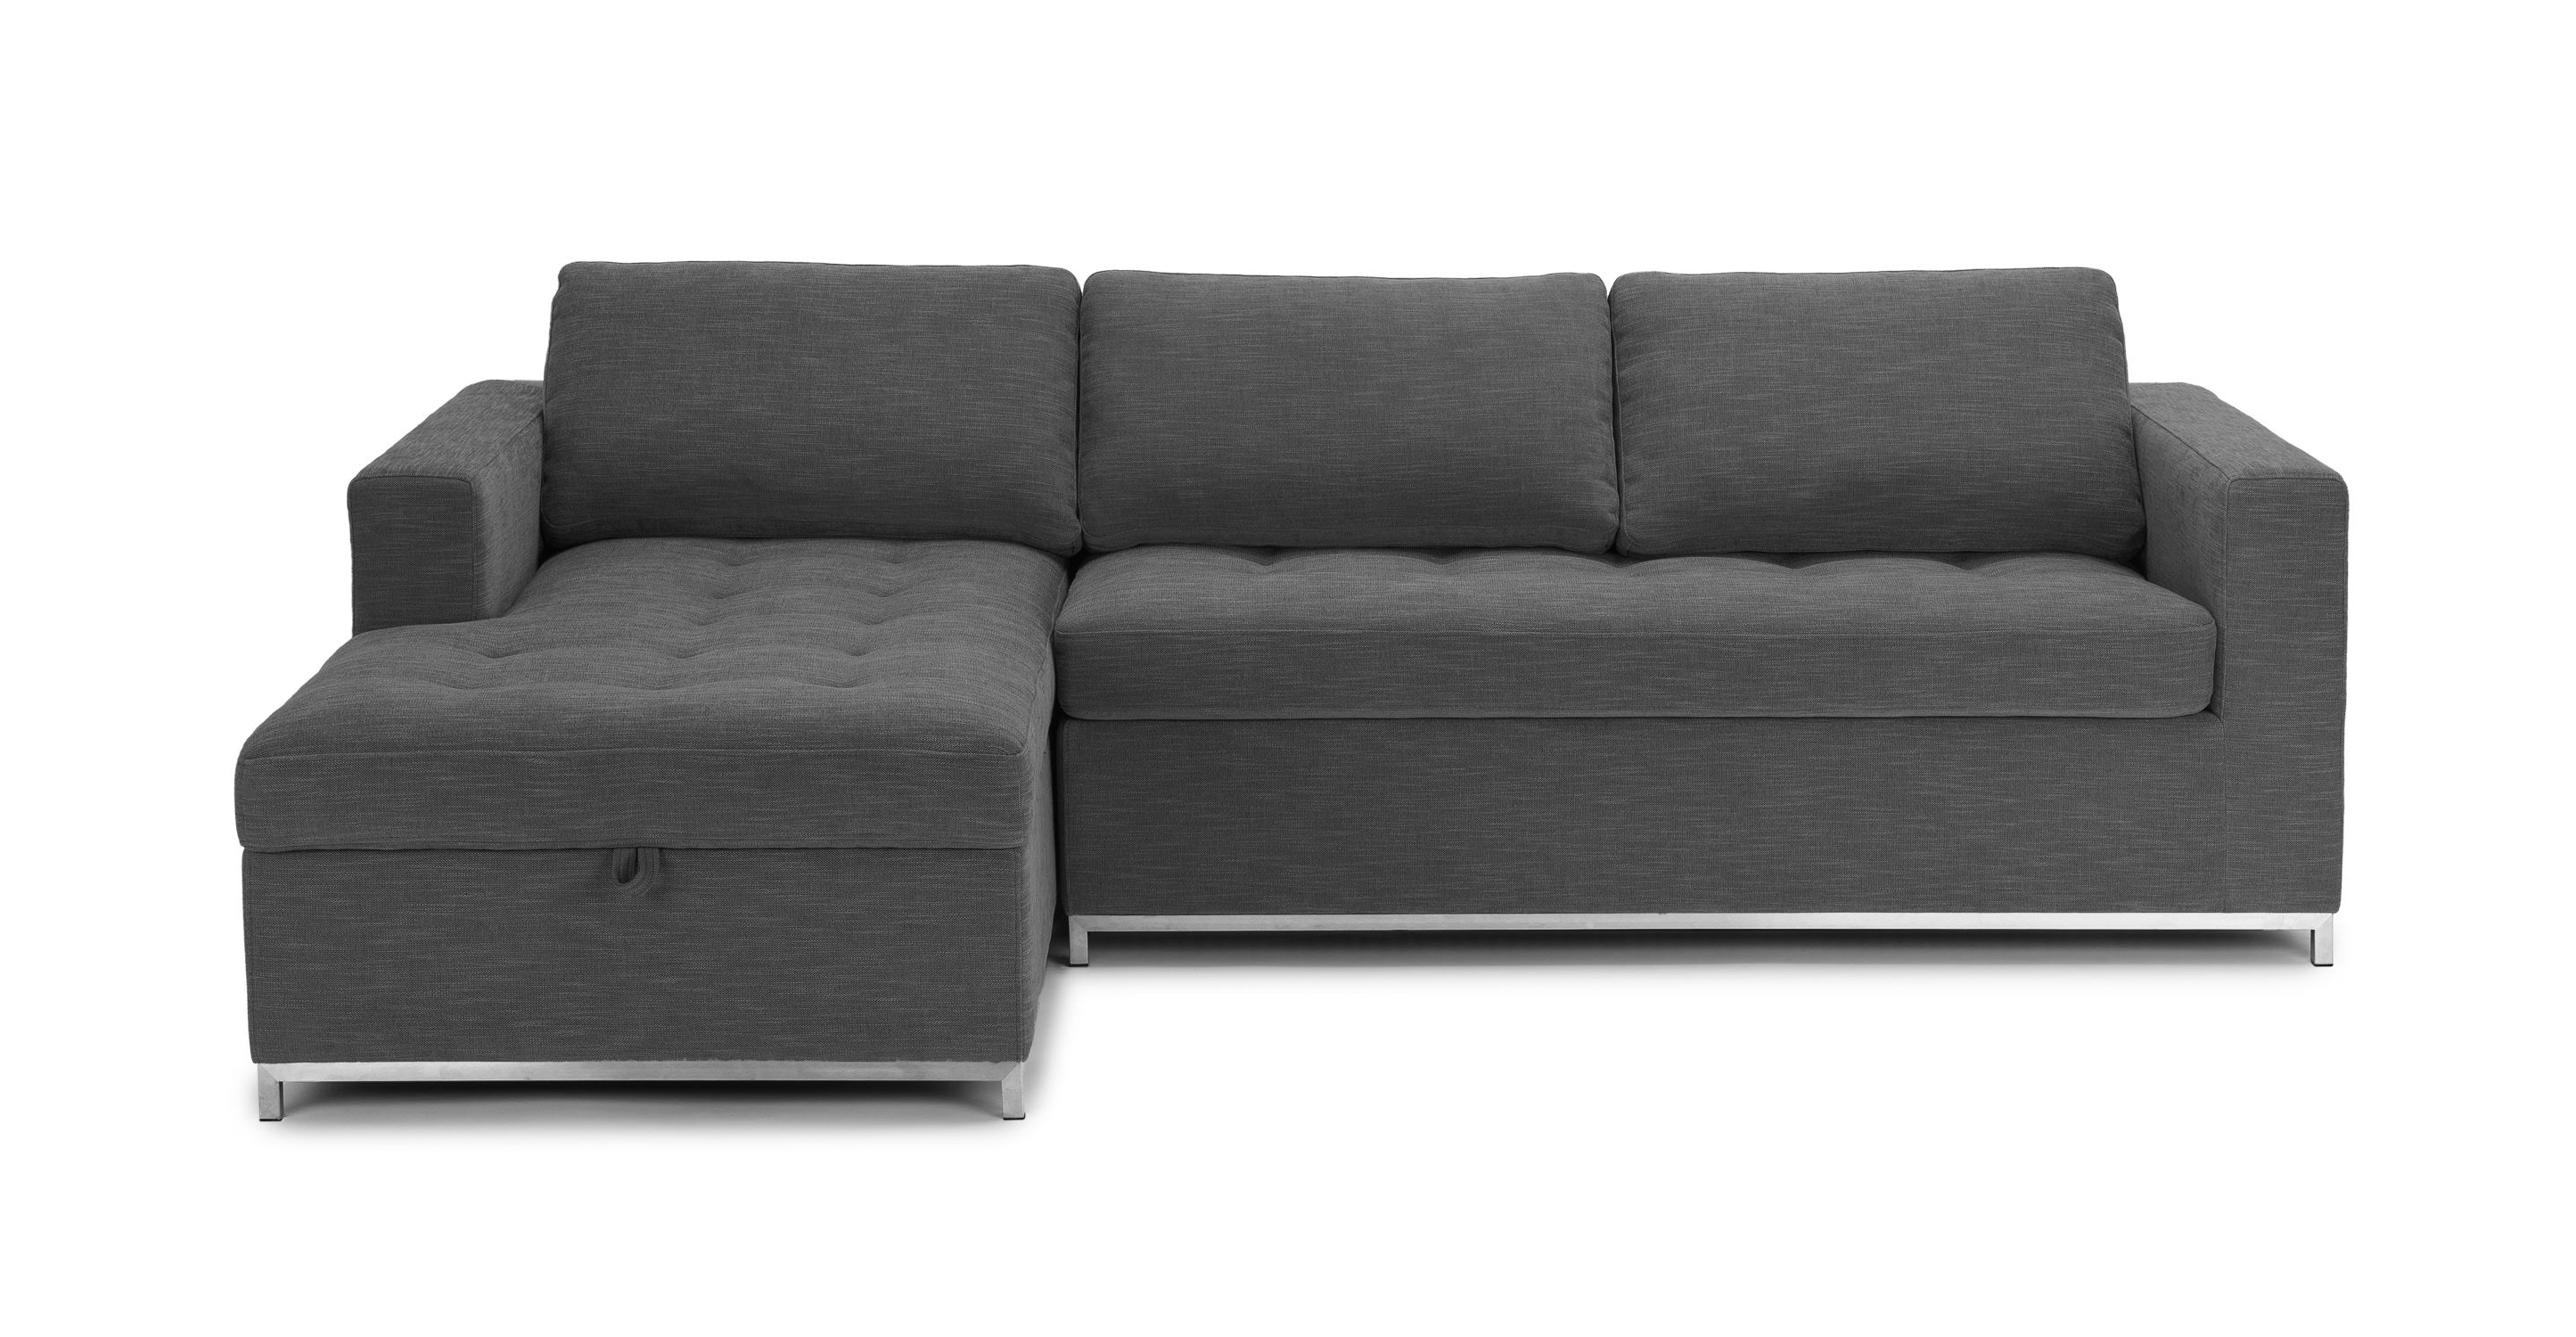 Well Known Best Of Sleeper Chaise Sofa – Buildsimplehome Pertaining To Taren Reversible Sofa/chaise Sleeper Sectionals With Storage Ottoman (View 19 of 20)